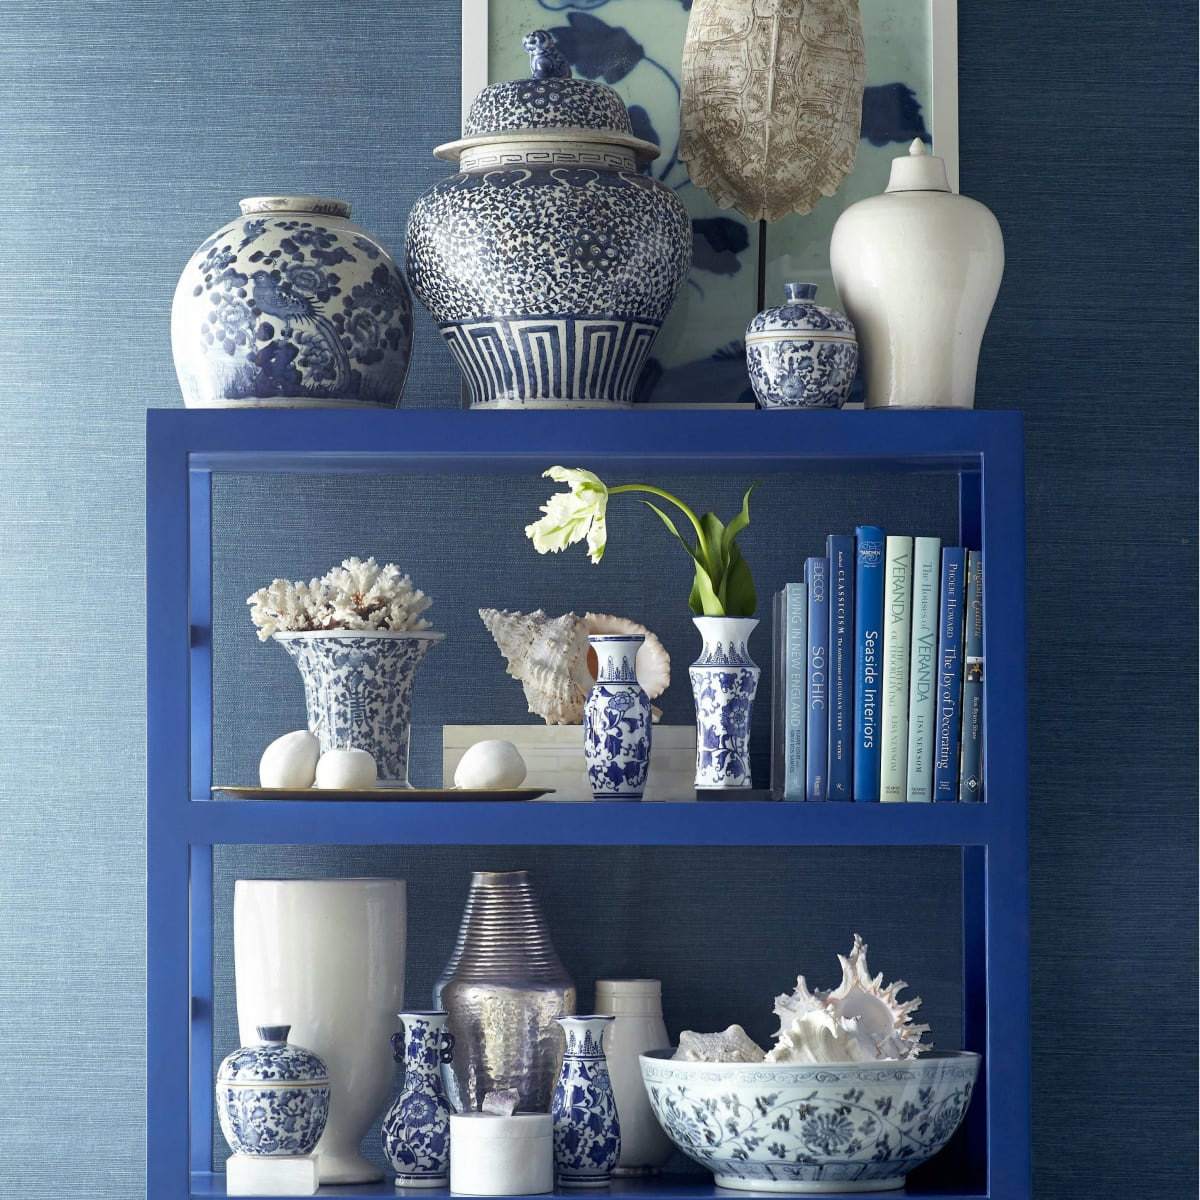 Bookshelf vignette from Wisteria